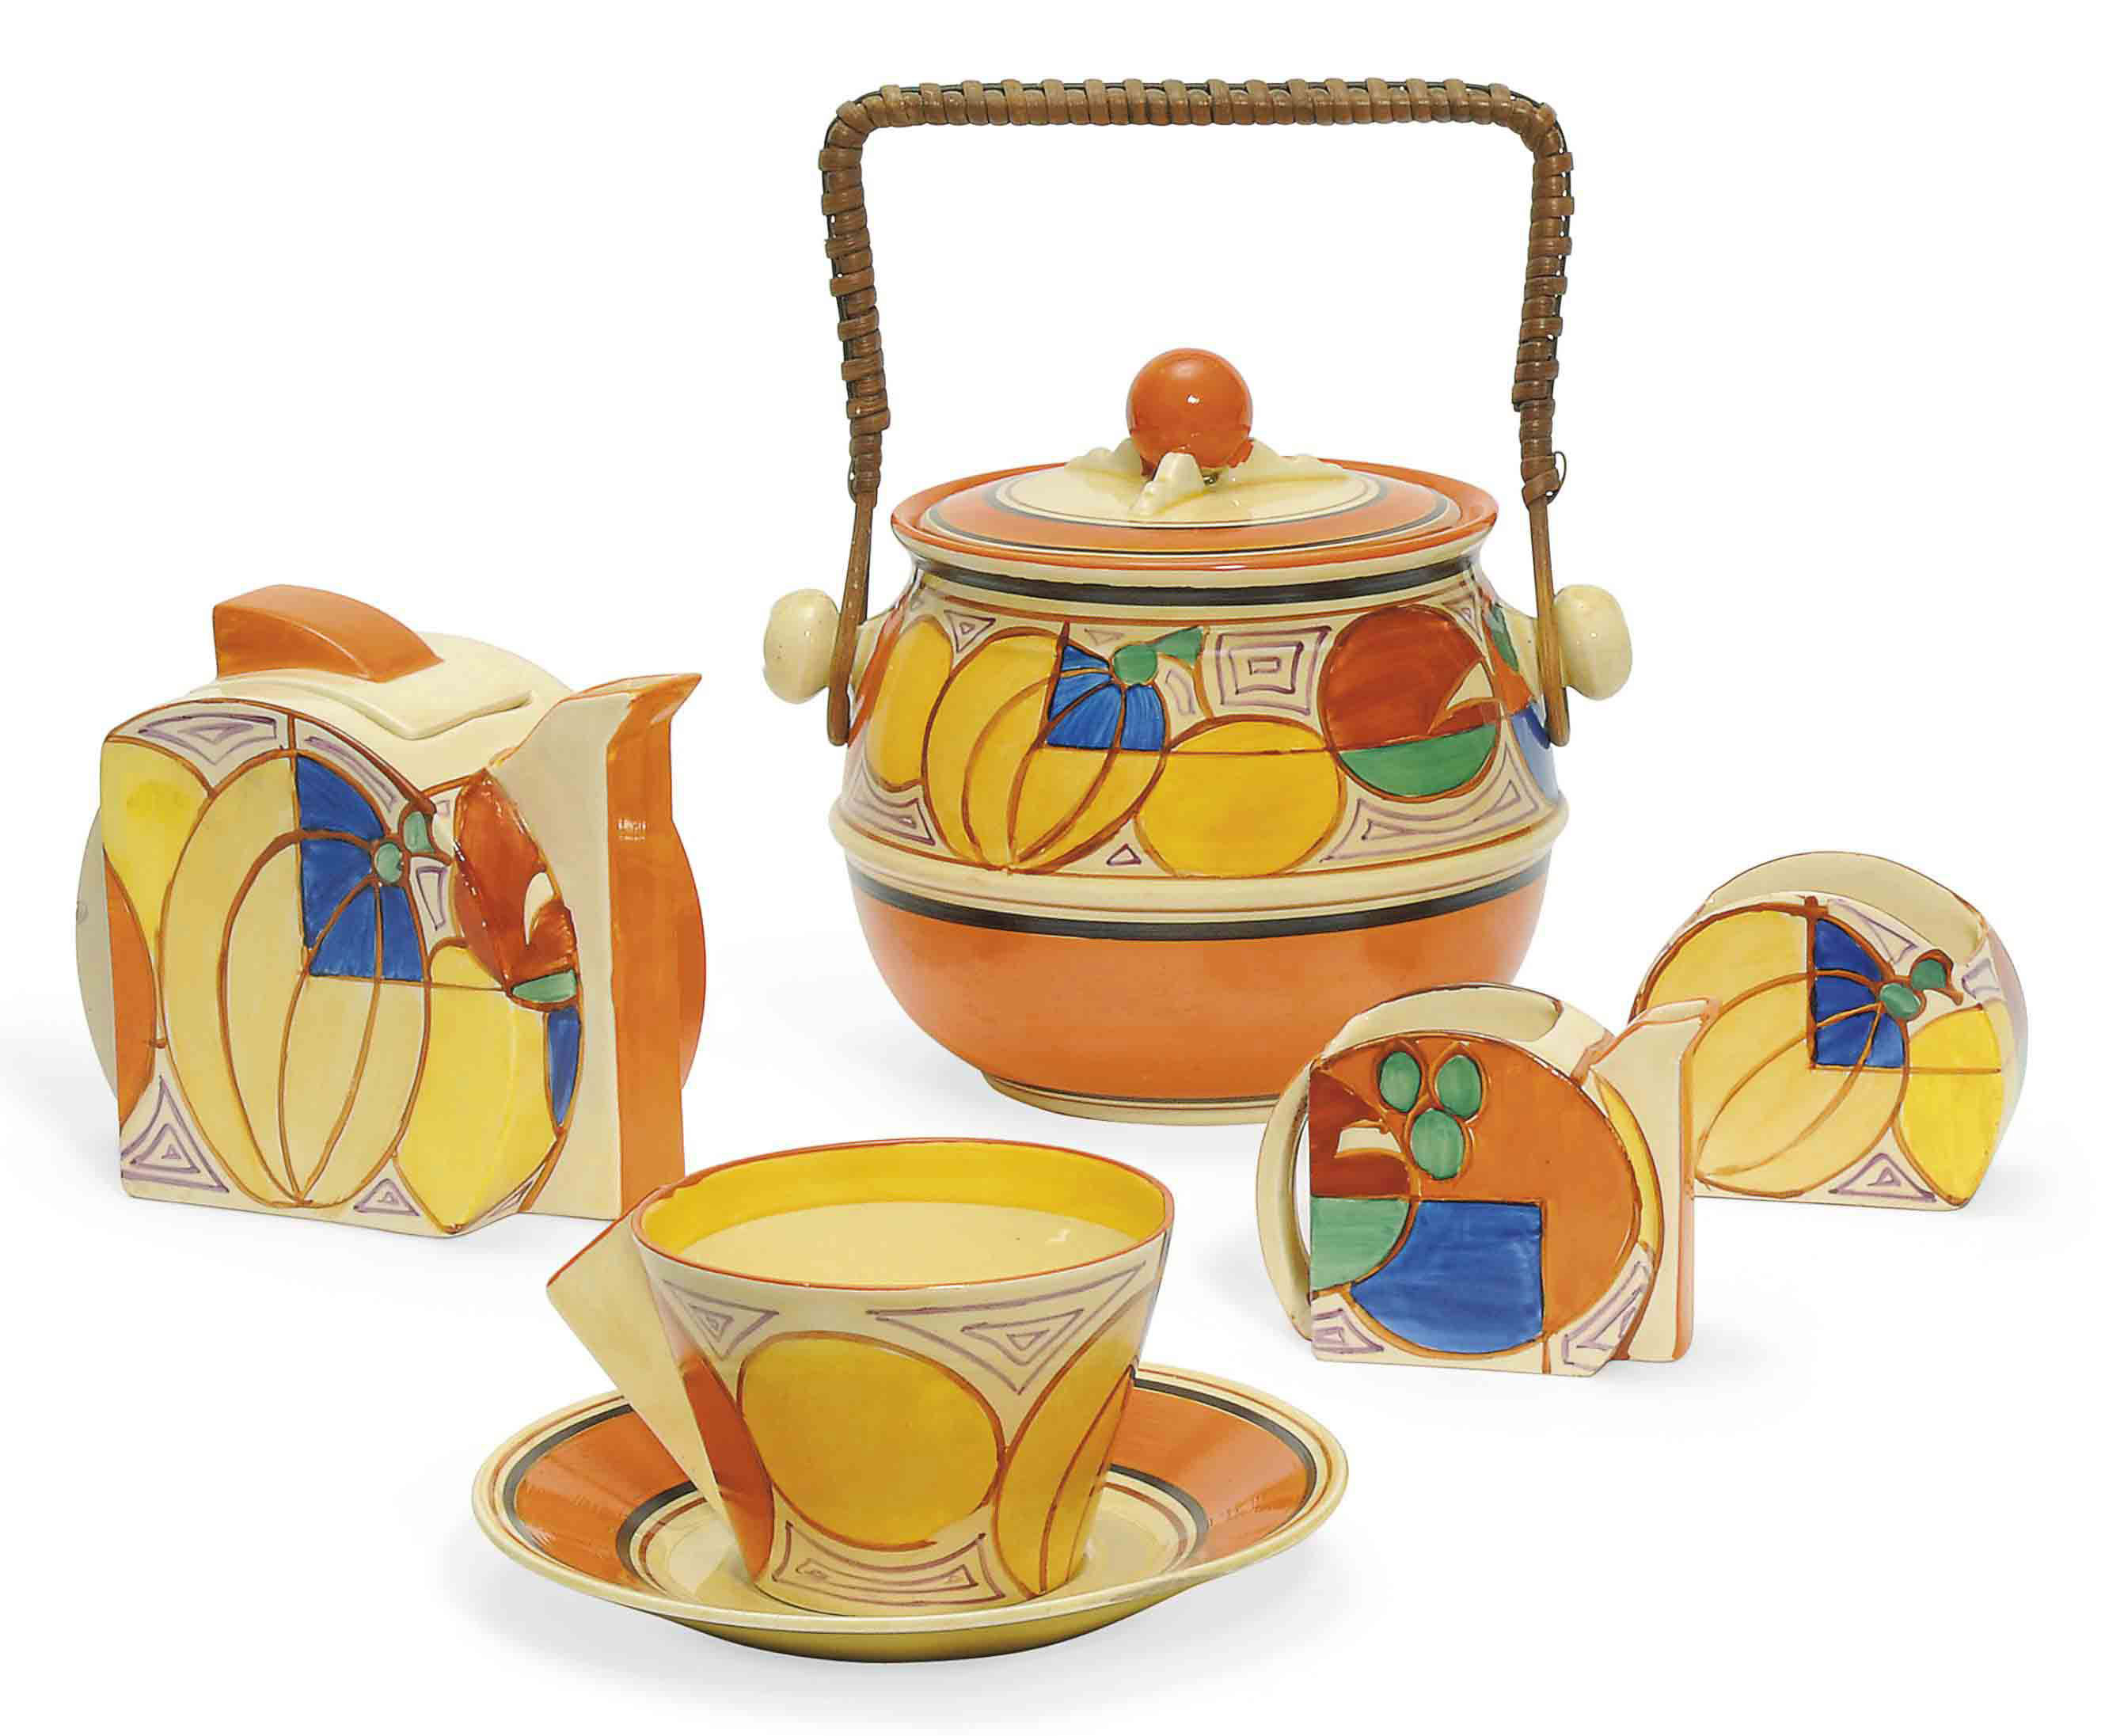 A CLARICE CLIFF MELON STAMFORD BACHELOR SET